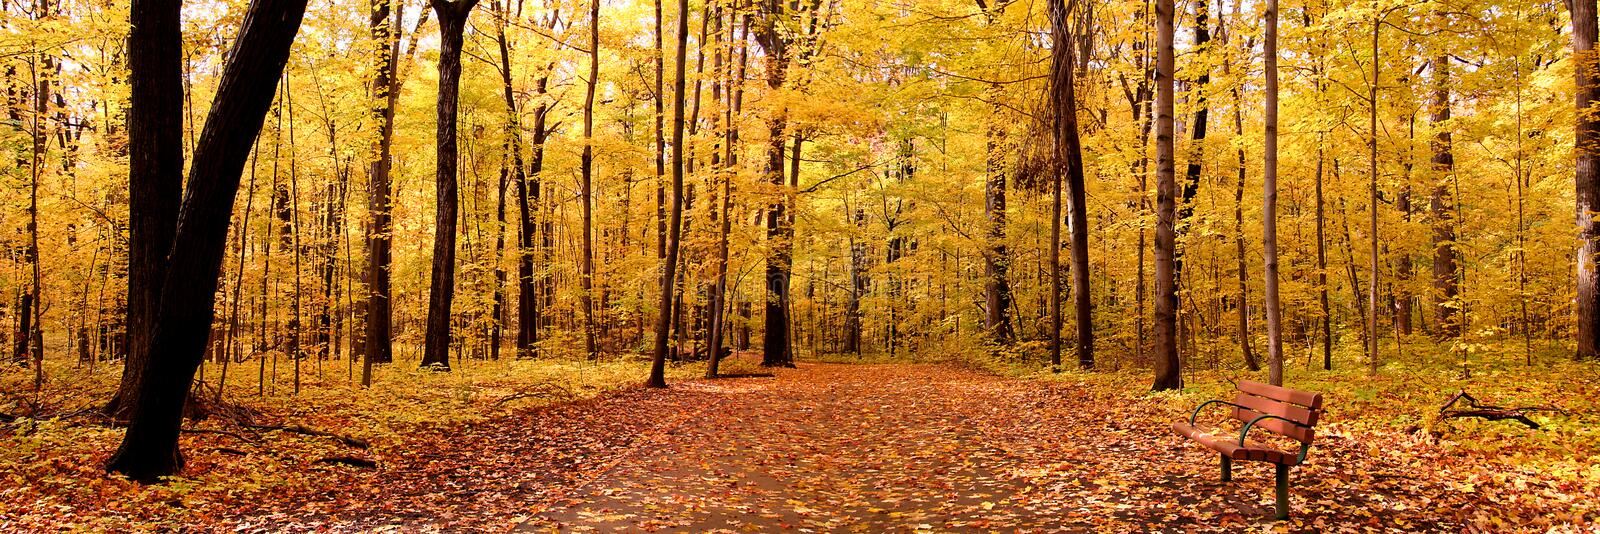 Autumn Panorama. Panoramic view of bright yellow colored autumn trees in a Michigan state park stock photo